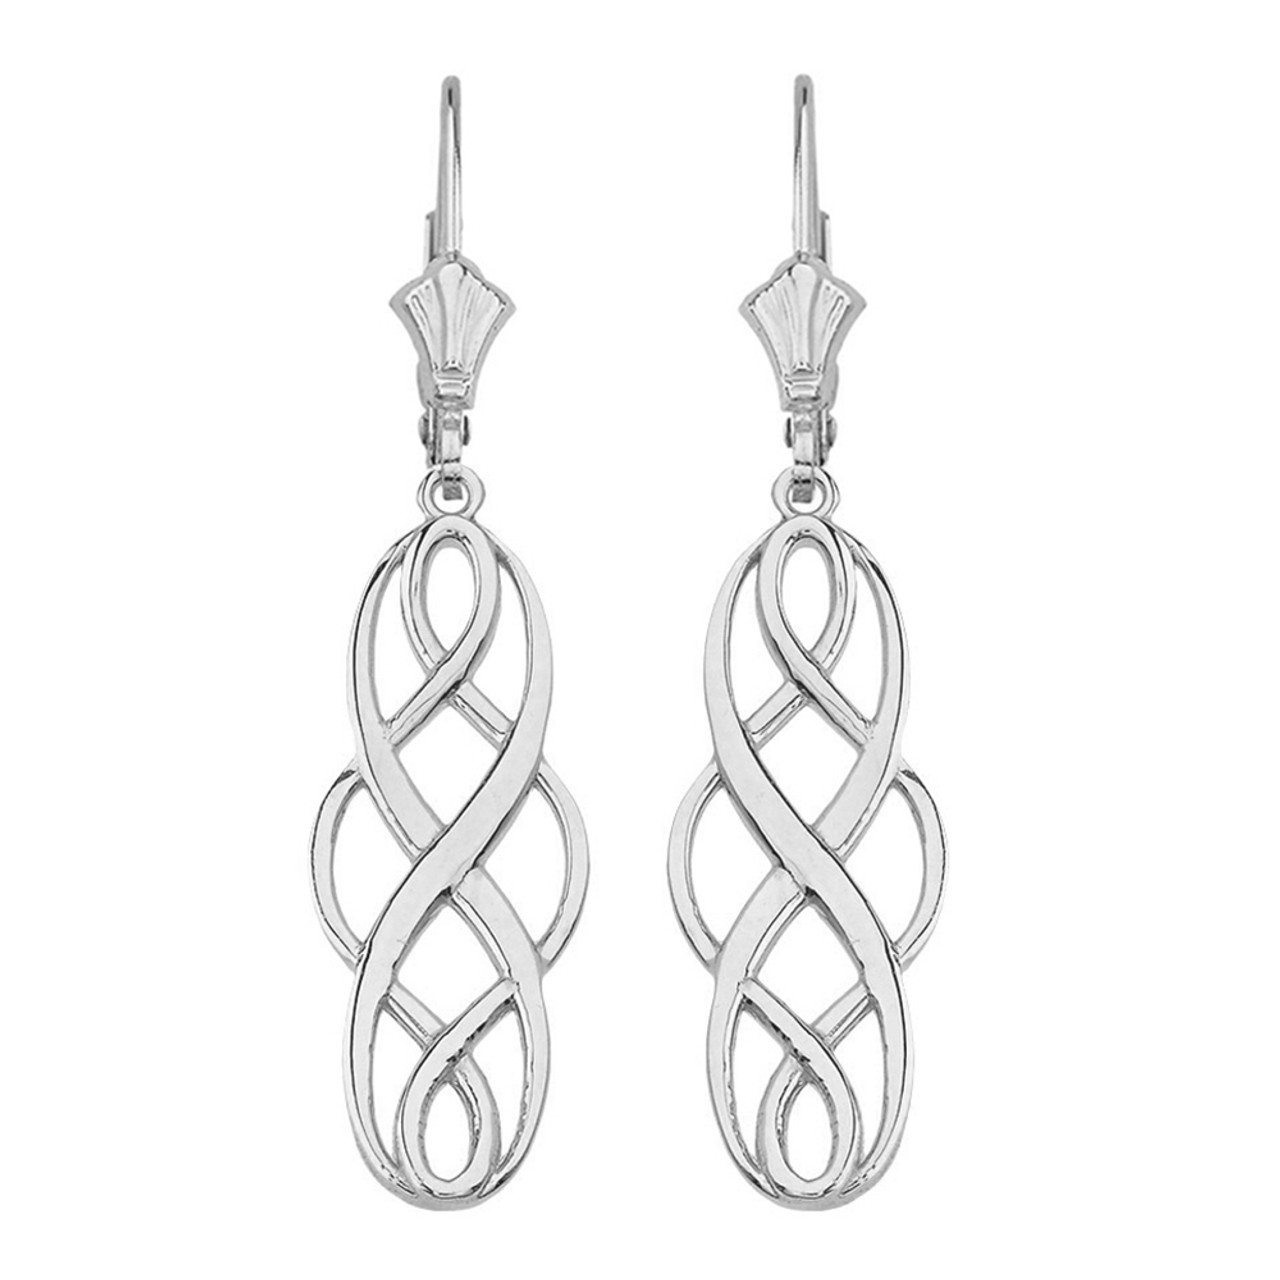 designs earrings product symmetrical tracy knot round silver celtic gilbert stud